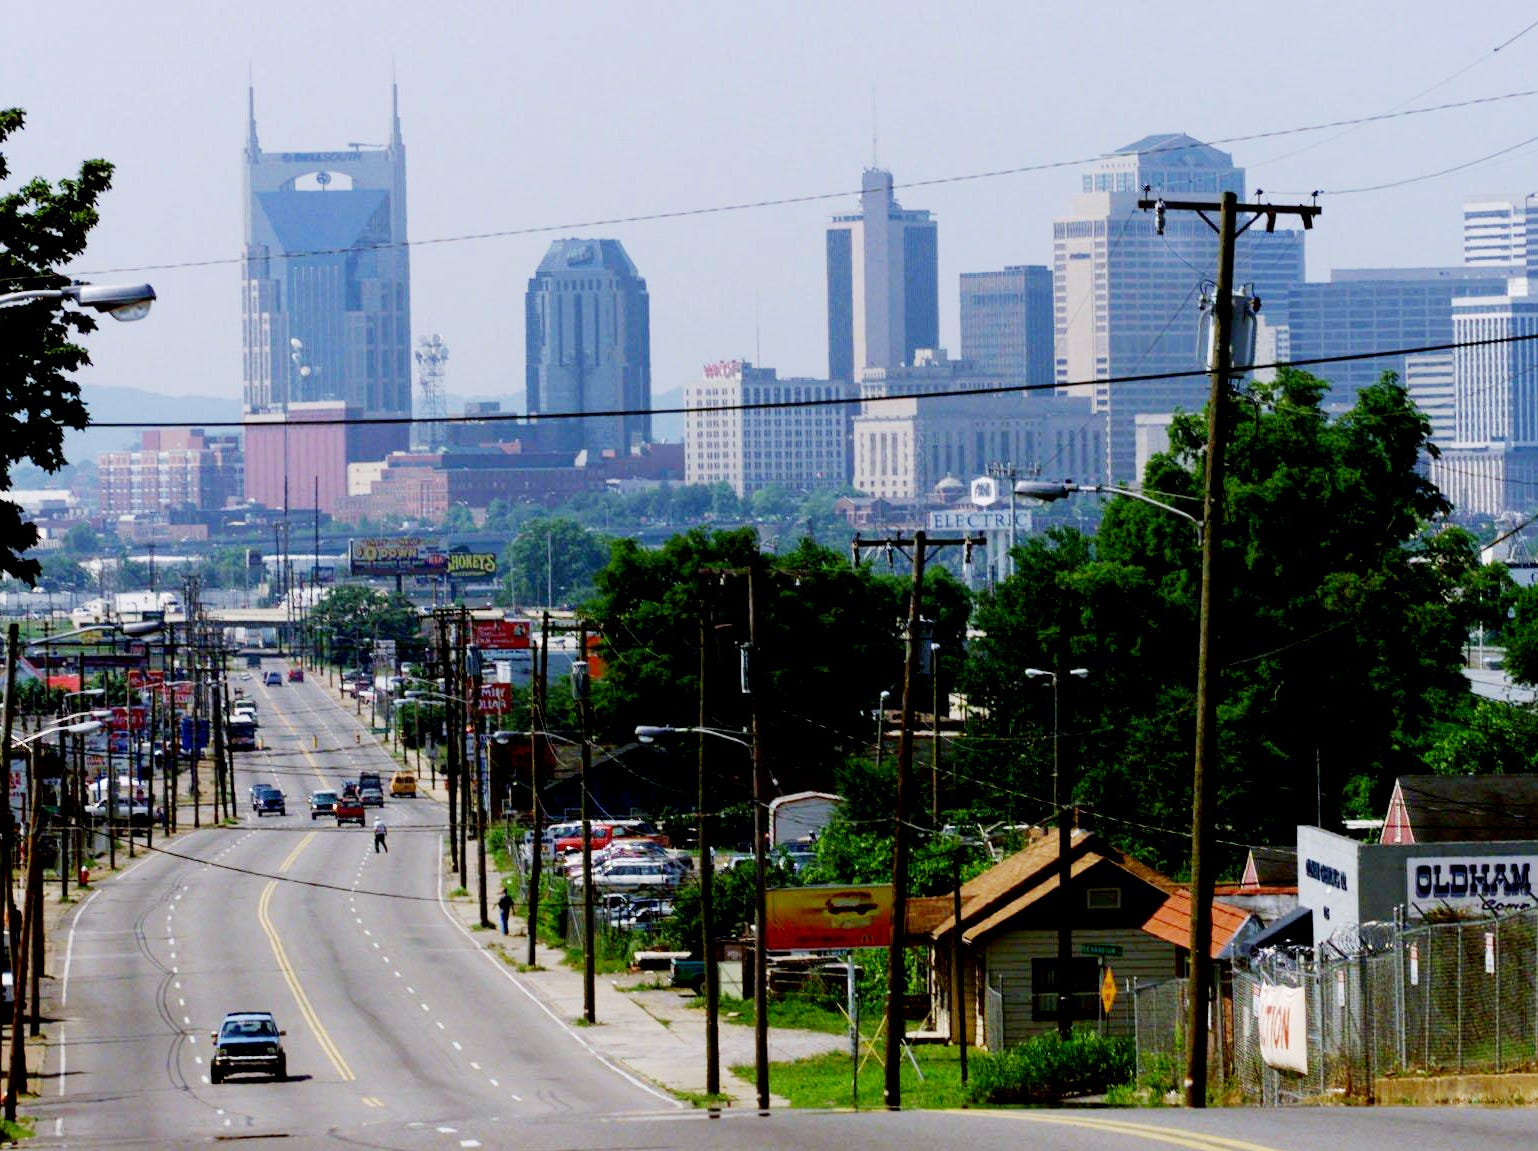 Nashville skyline is visible from most of Dickerson Road, as seen here on June 1, 2000.